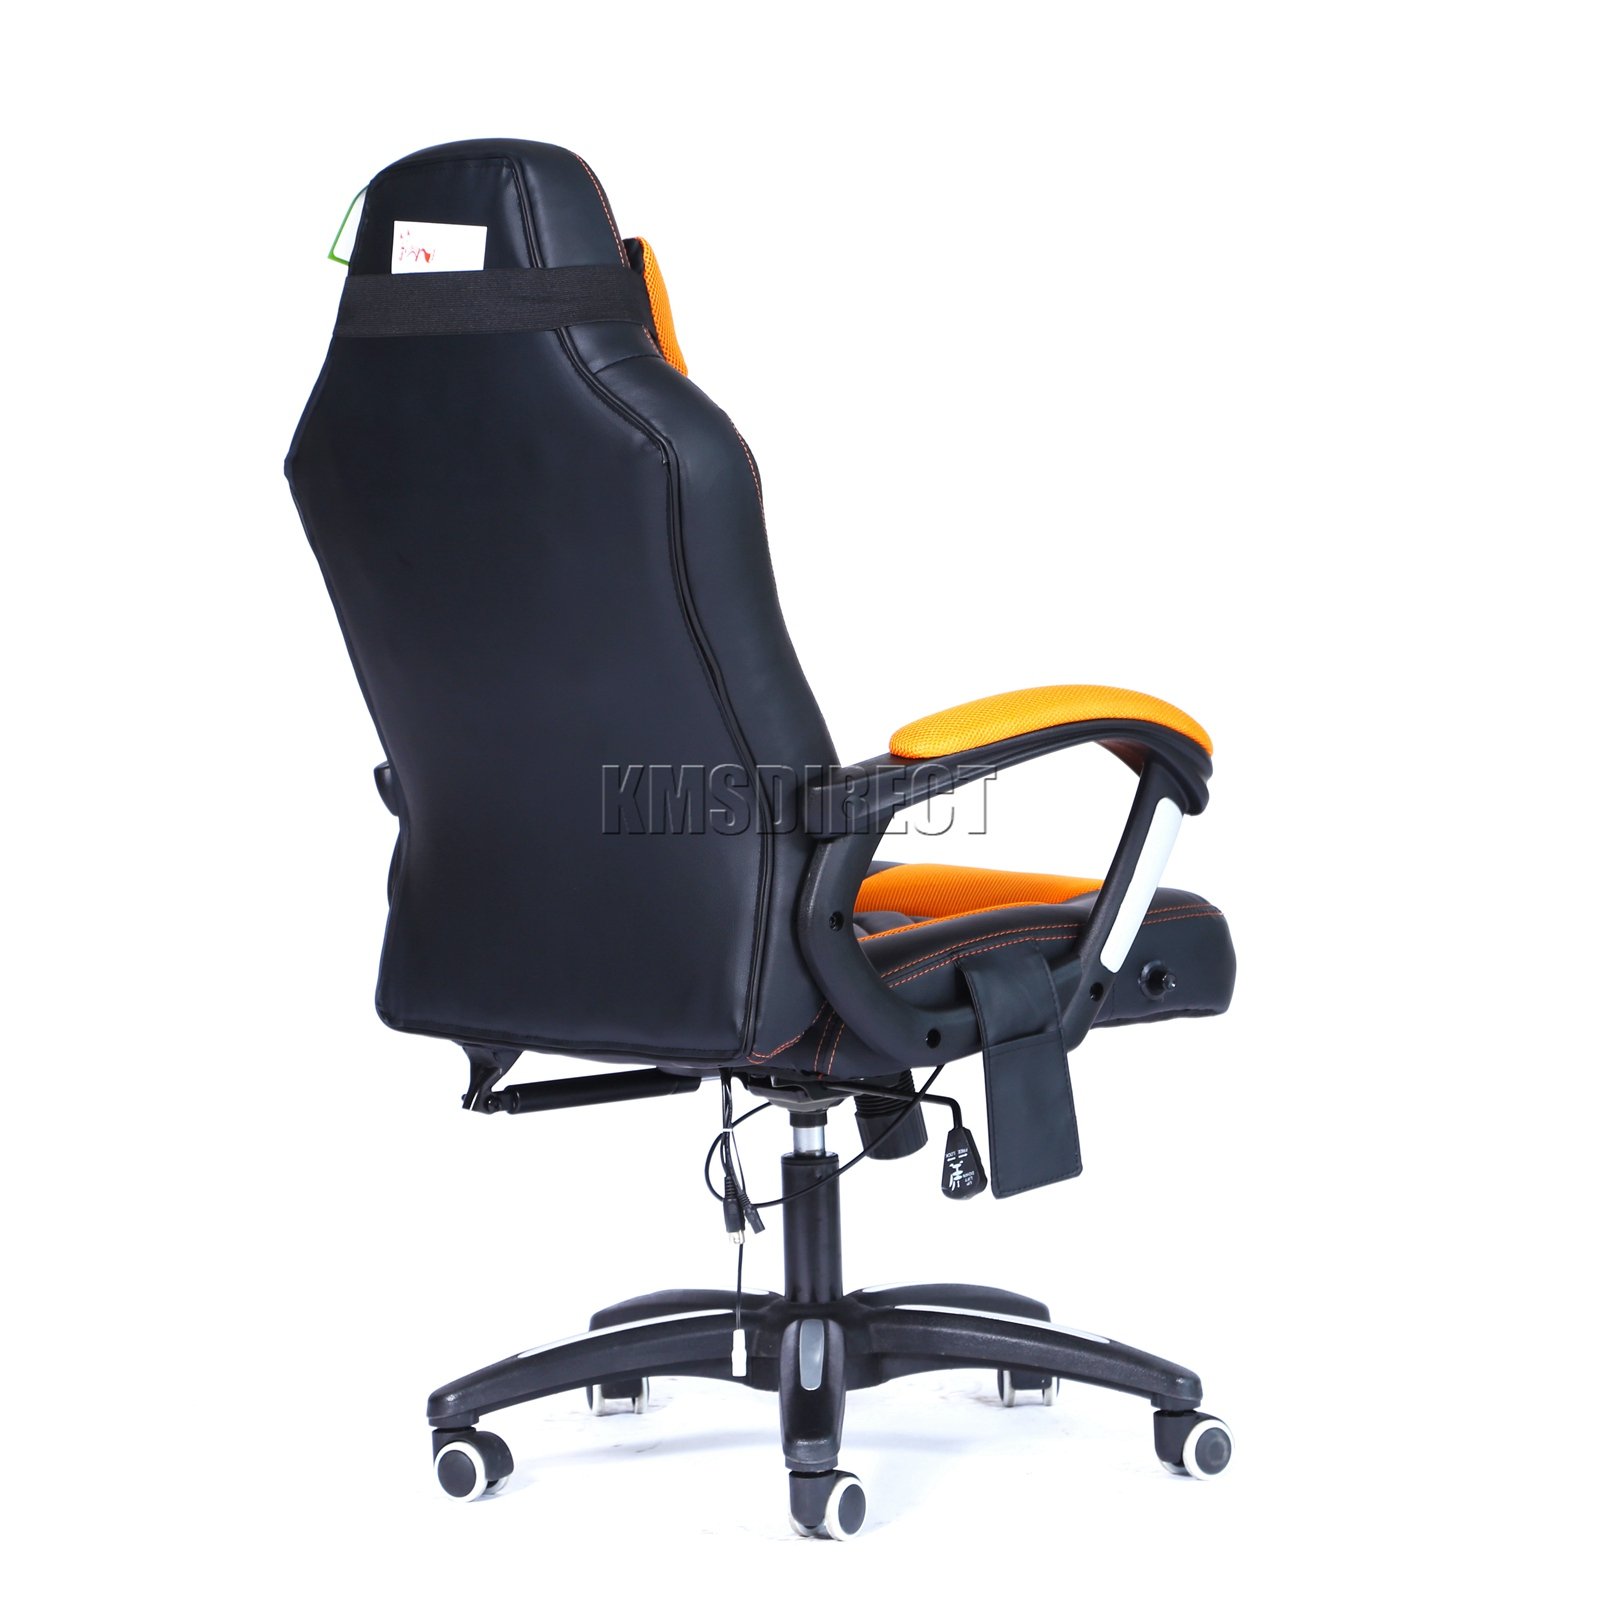 WestWood-Heated-Massage-Office-Chair-Gaming-amp-Computer-Recliner-Swivel-MC09 thumbnail 29